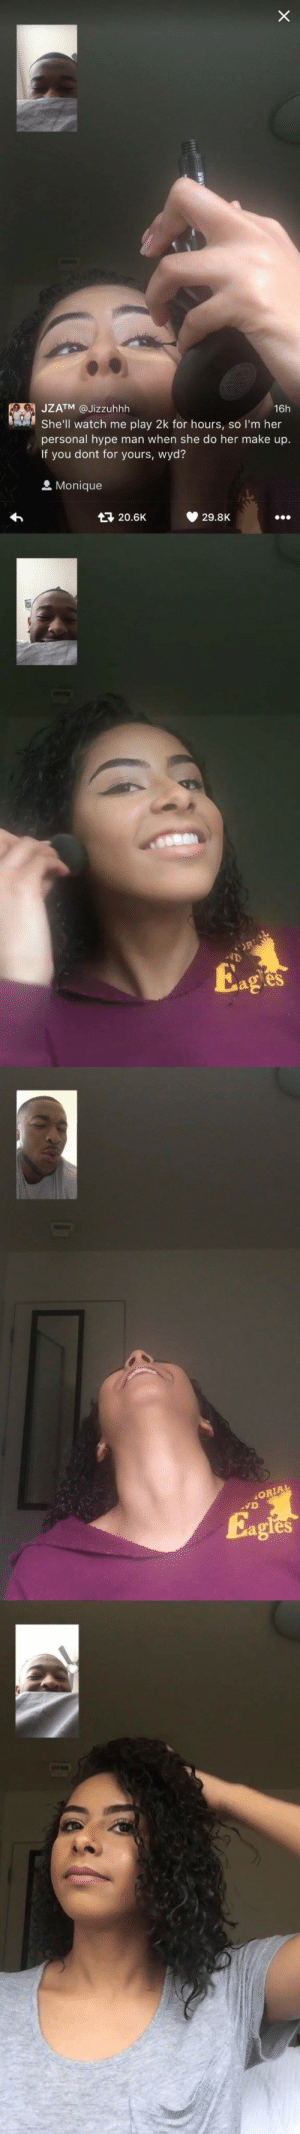 """iverbz:  nalgonaofcolor:  You can tell he's going """"ohhHhhhhHHH!"""" 😩😭 this is so cute lmao  this is one of most wholesome me posts ive ever seen : JZATM @Jizzuhhh  16h  She'll watch me play 2k for hours, so I'm her  personal hype man when she do her make up.  If you dont for yours, wyd?  Monique  20.6K  29.8K   ag e   ORIA  agles iverbz:  nalgonaofcolor:  You can tell he's going """"ohhHhhhhHHH!"""" 😩😭 this is so cute lmao  this is one of most wholesome me posts ive ever seen"""